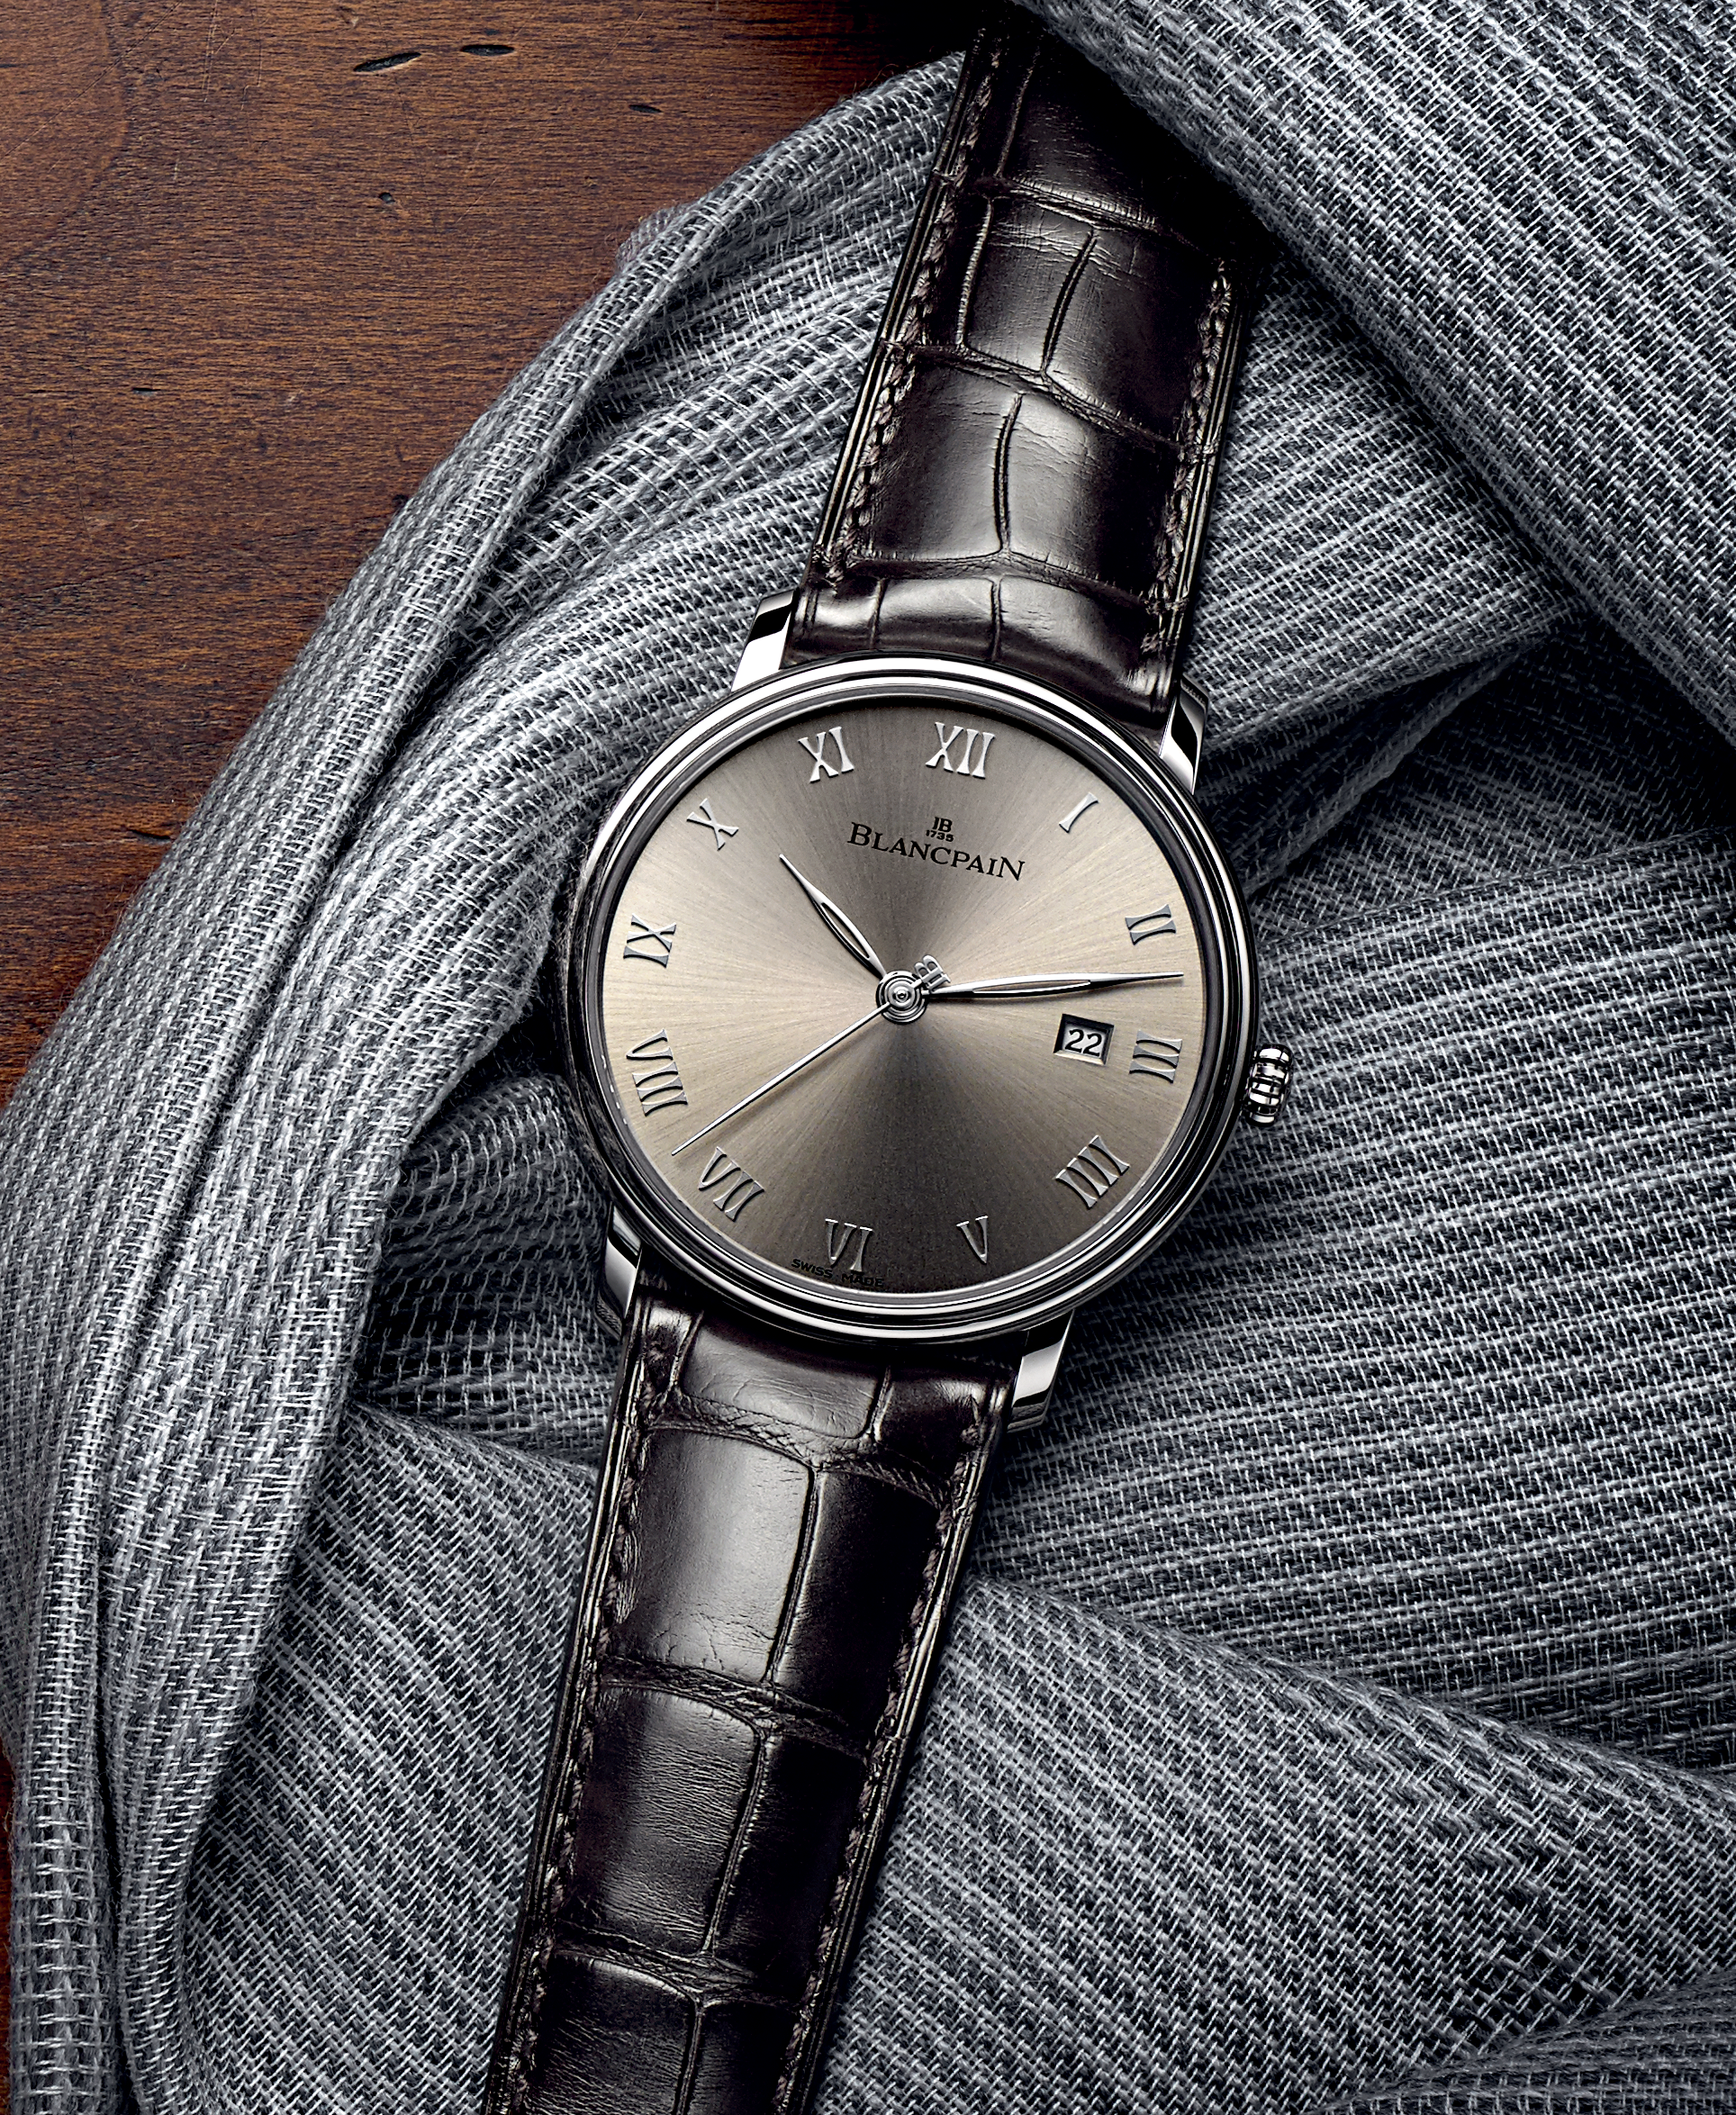 Blancpain Villeret Ultraplate, Bathyscaphe Chronograph and Tailoring: emblems of Men's lifestyle